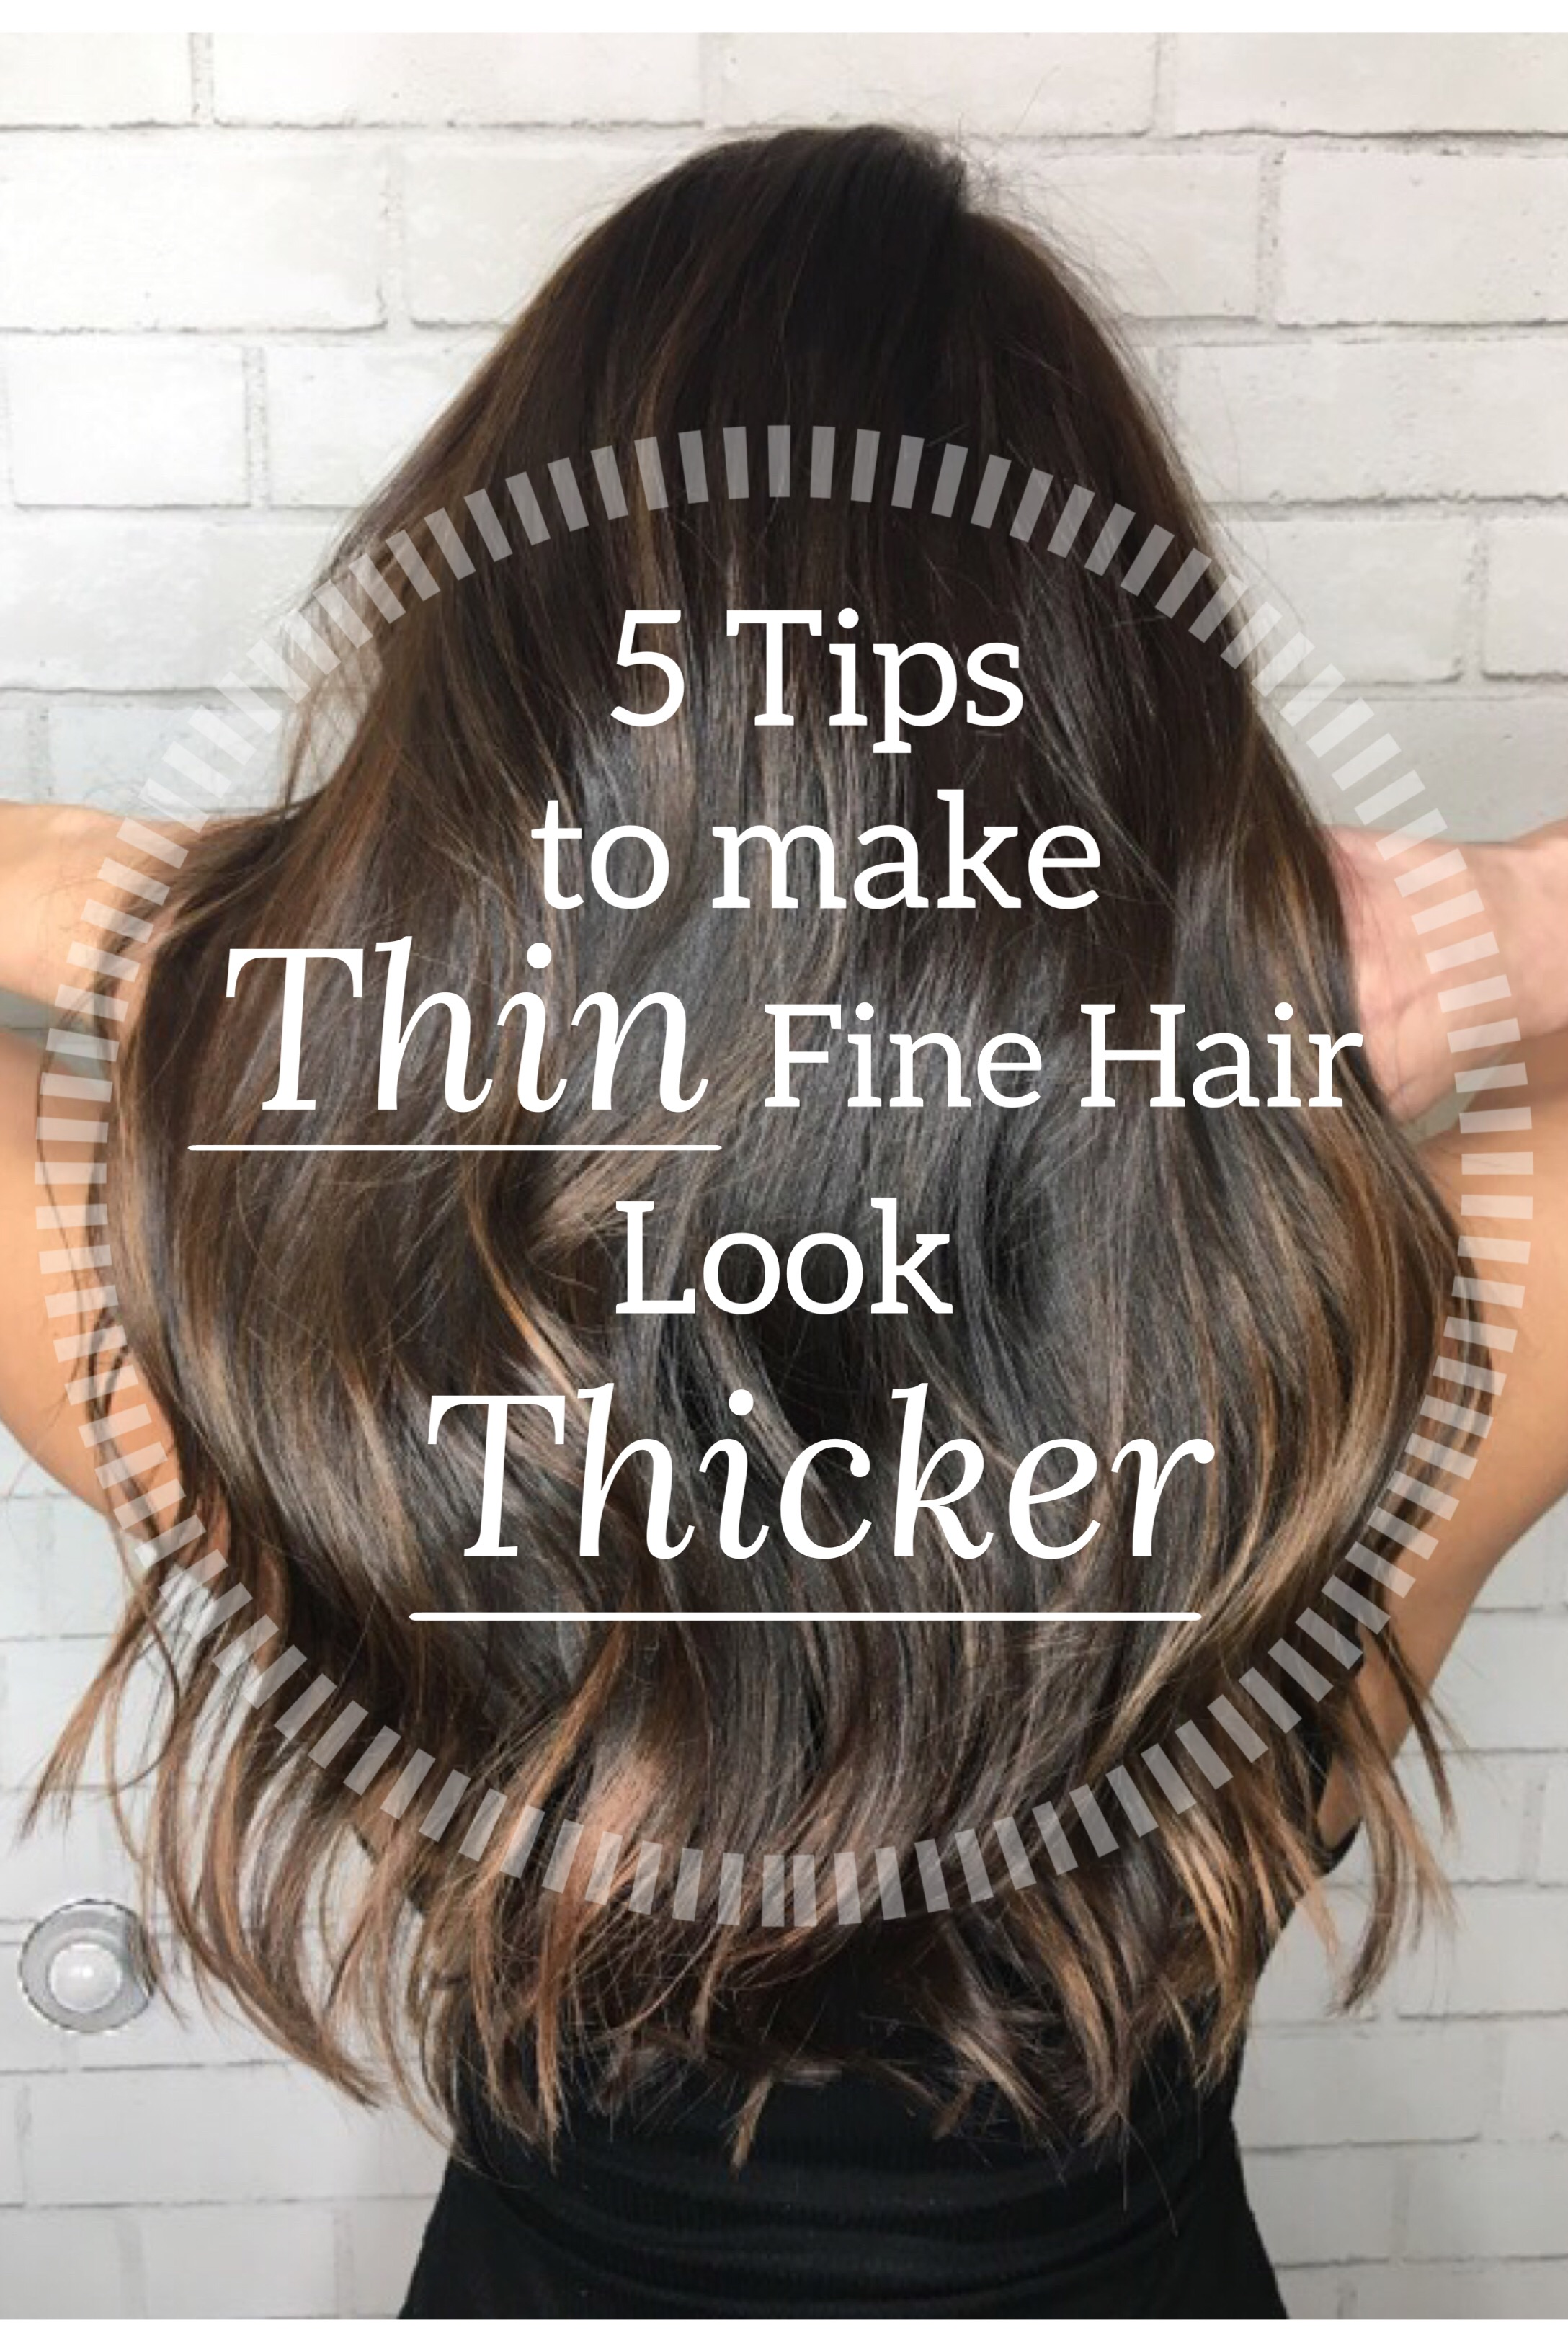 11 Tips To Make Thin Fine Hair Look Thicker